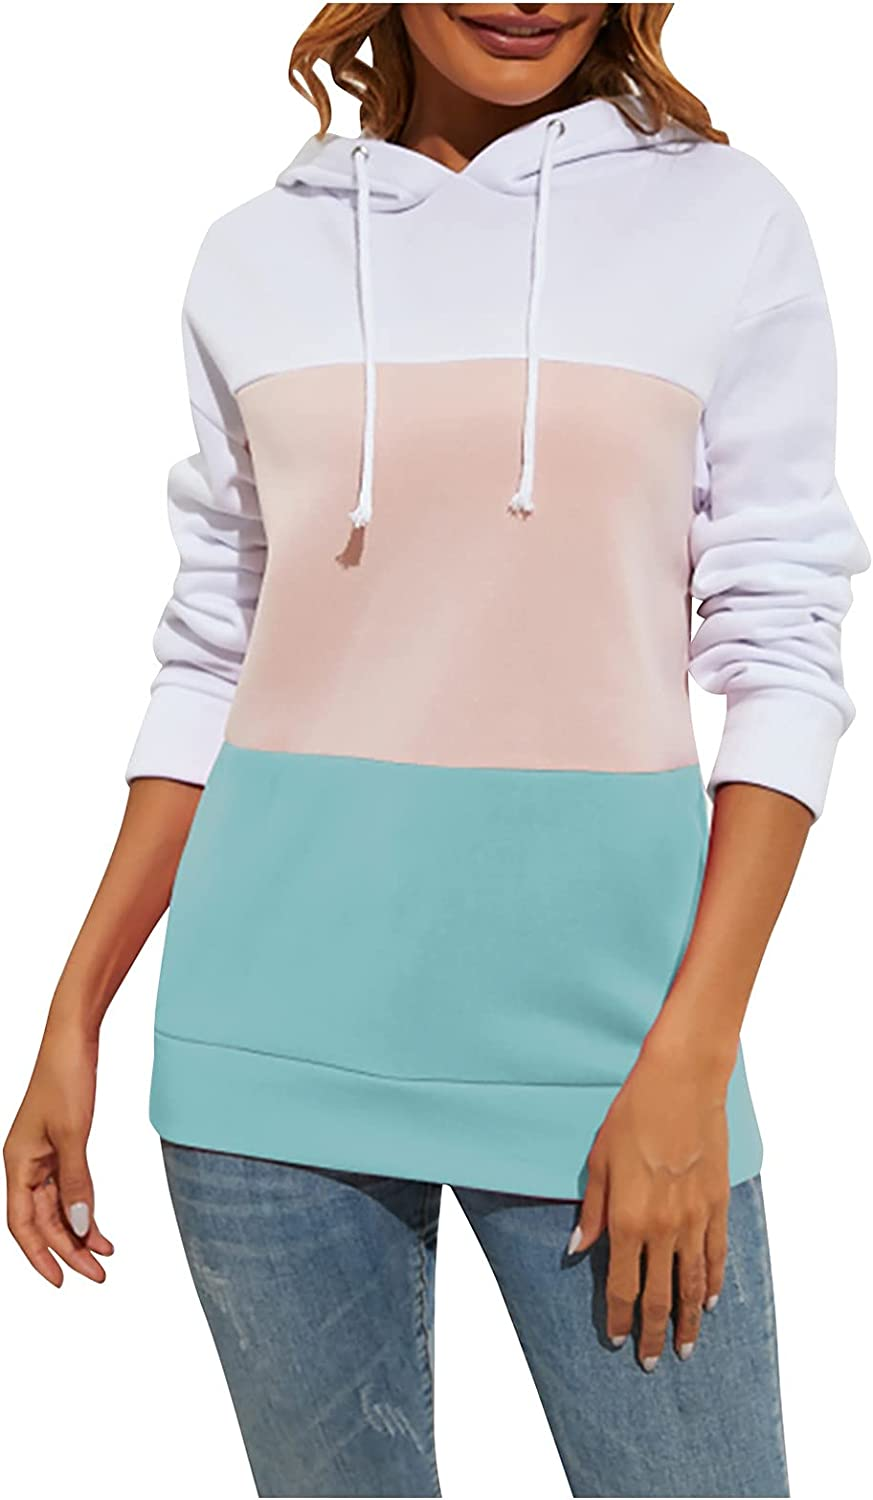 Pullover Blouse for Women Contrast Hooded Neck Max unisex 72% OFF Swea Round Color